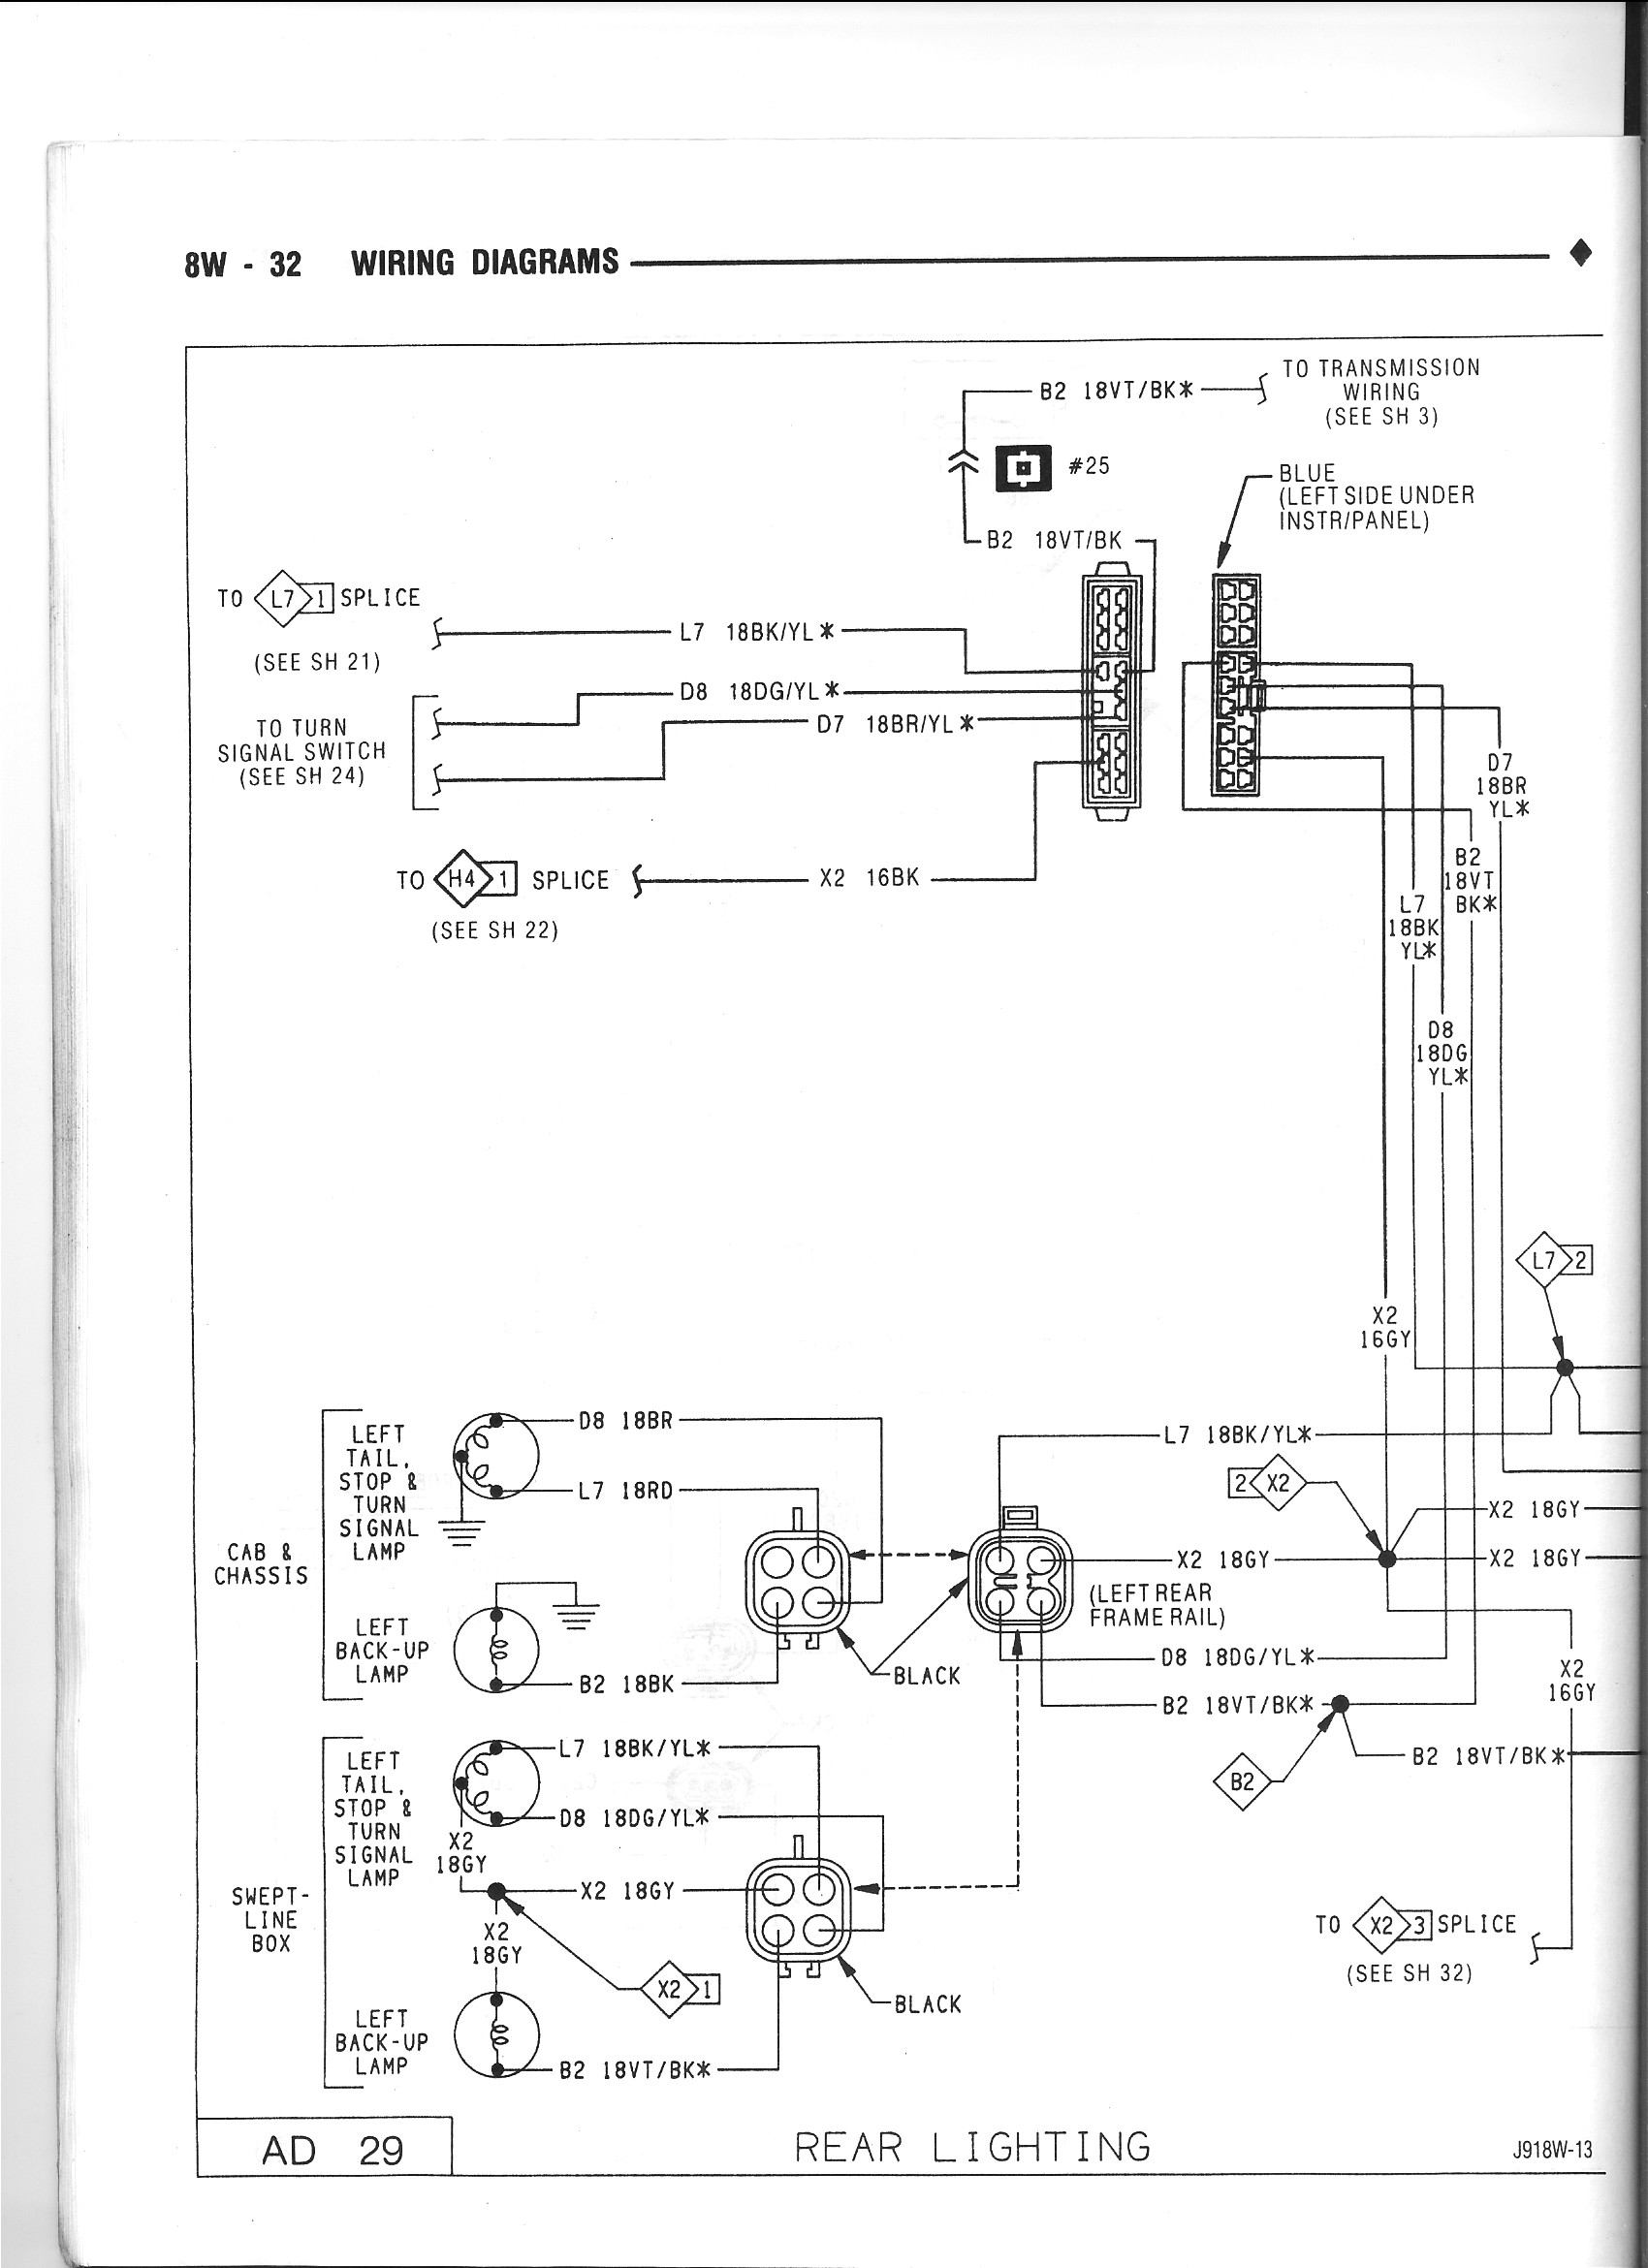 1991 dodge pickup wiring diagram 1991 dodge pickup wiring diagram sbec wiring harness - dodge diesel - diesel truck resource forums #1